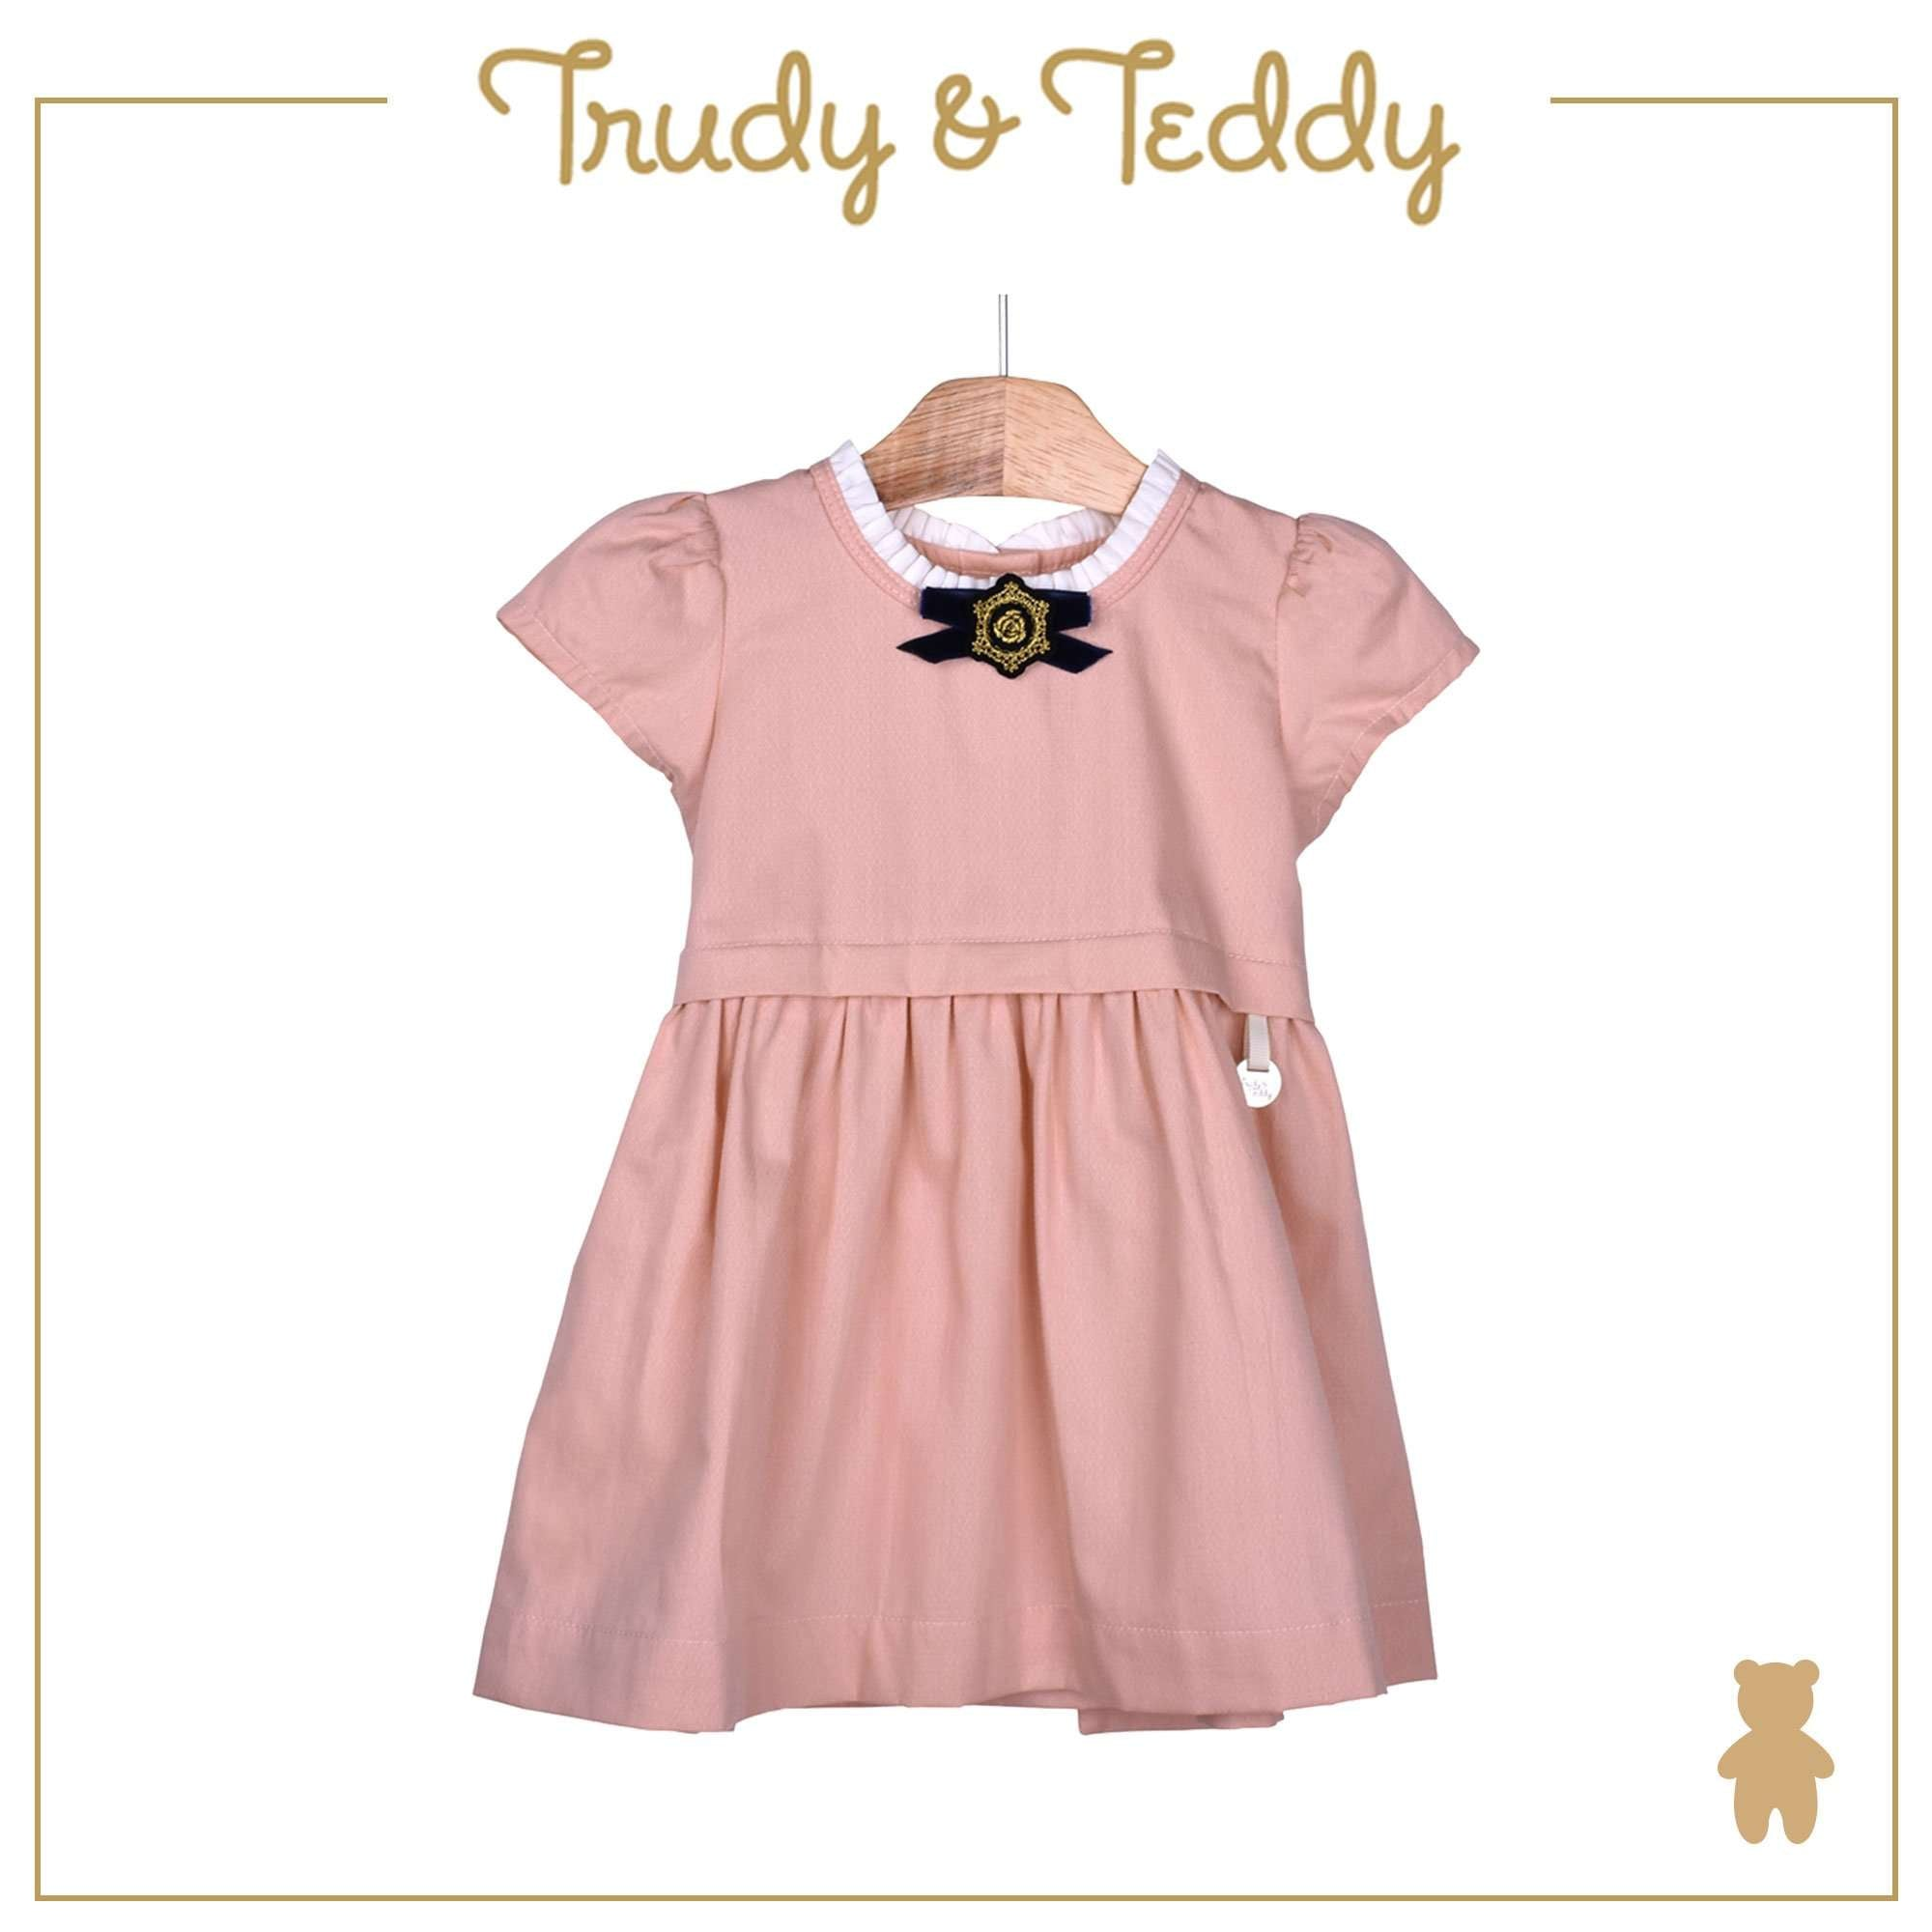 Trudy & Teddy Baby Girl Woven Short Sleeve Dress 810118-311 : Buy Trudy & Teddy online at CMG.MY